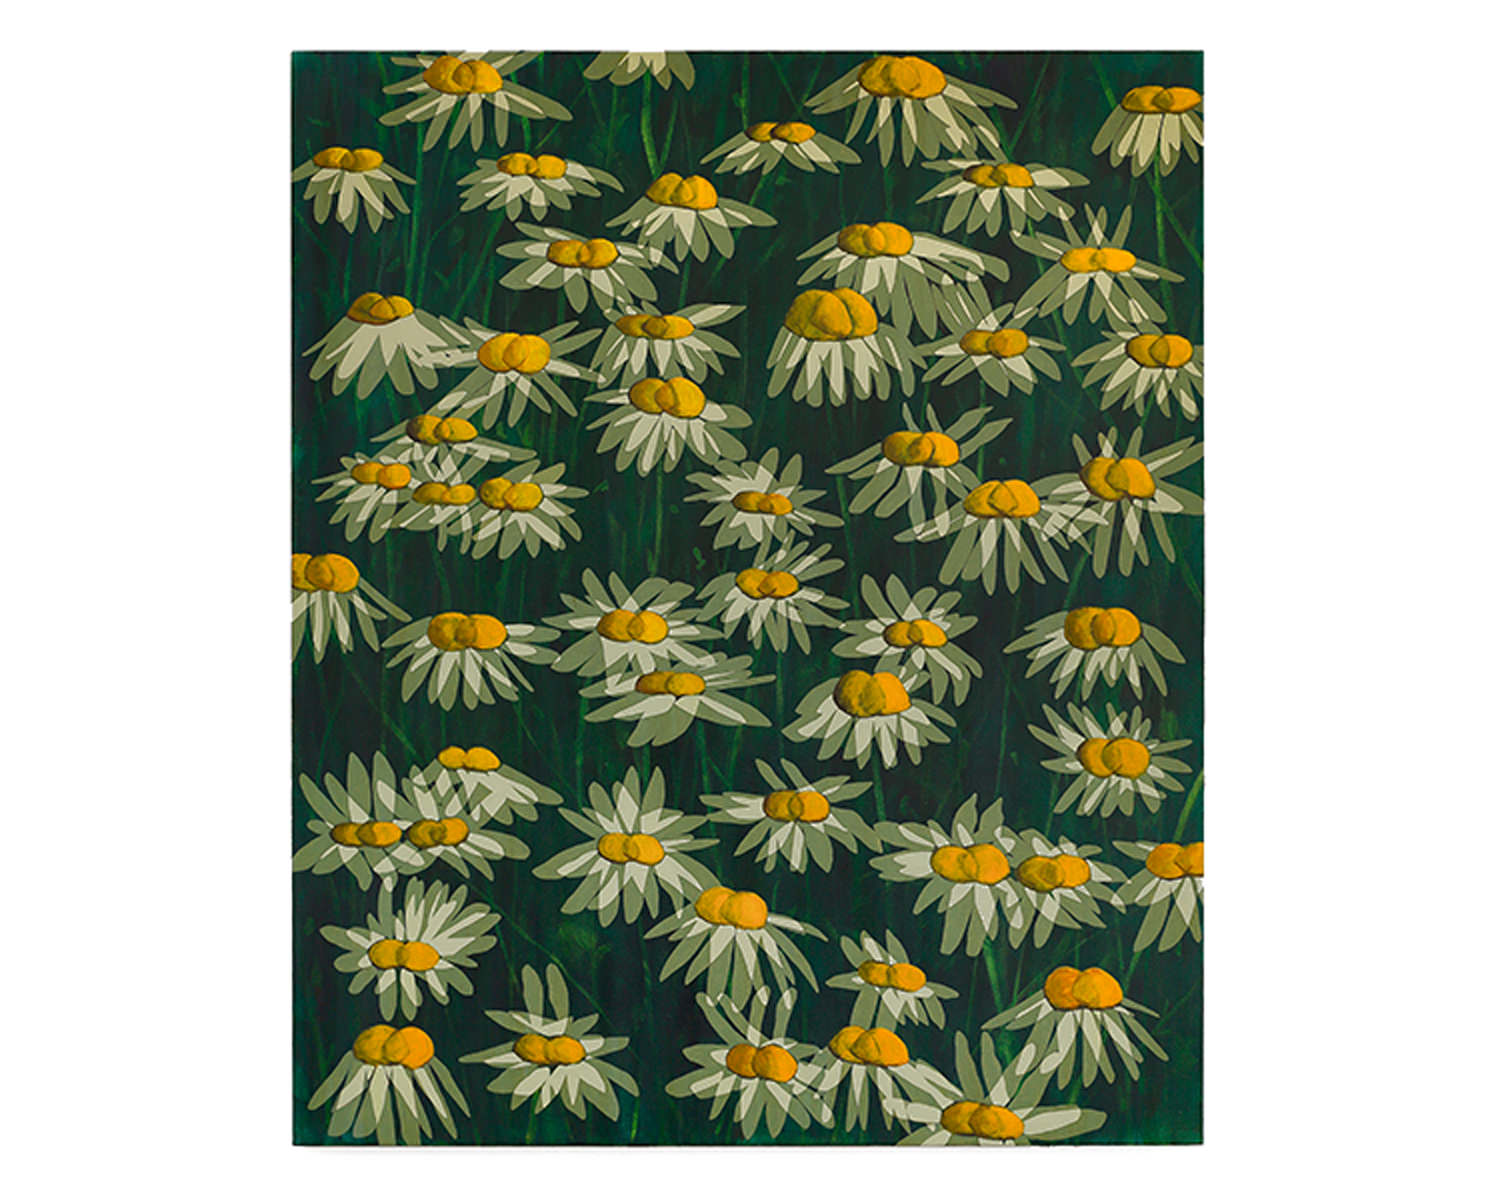 Ryan Mrozowski, Untitled (Shifted Flowers), 2016, Acrylic on linen, 60 x 50""